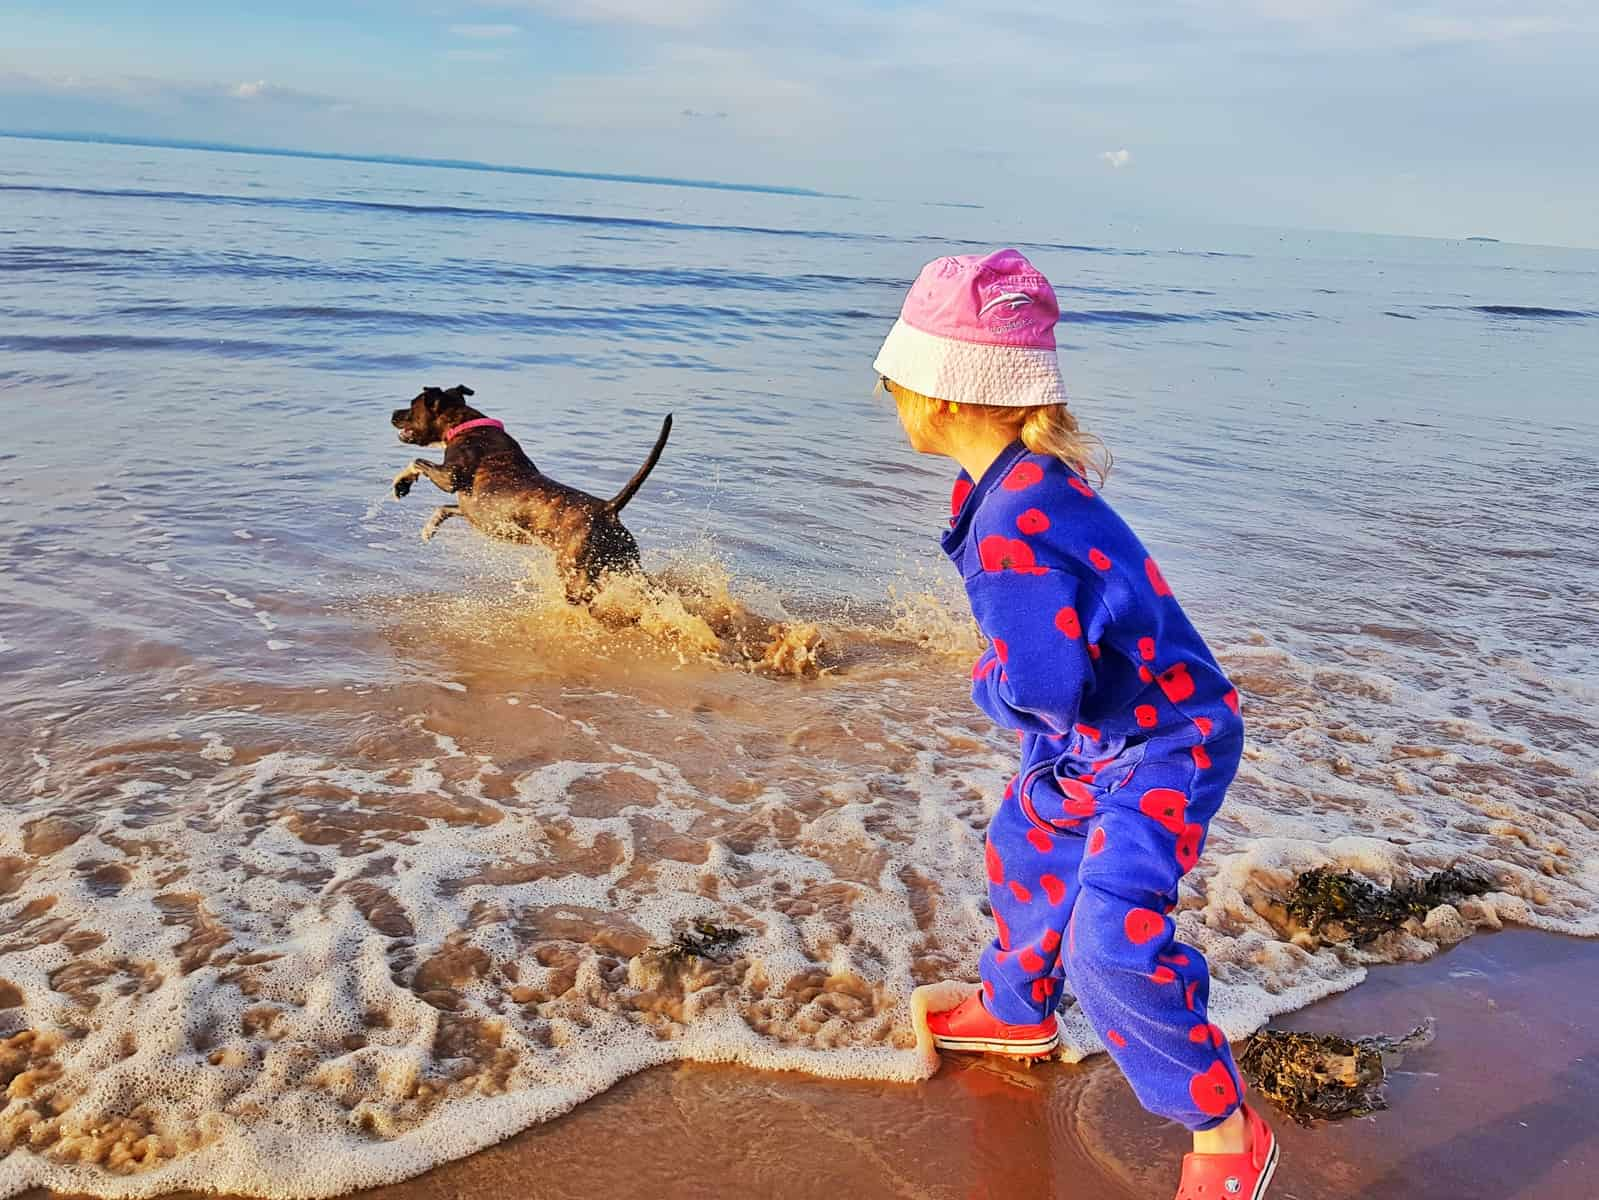 Hoburne Blue Anchor child playing with dog in sea